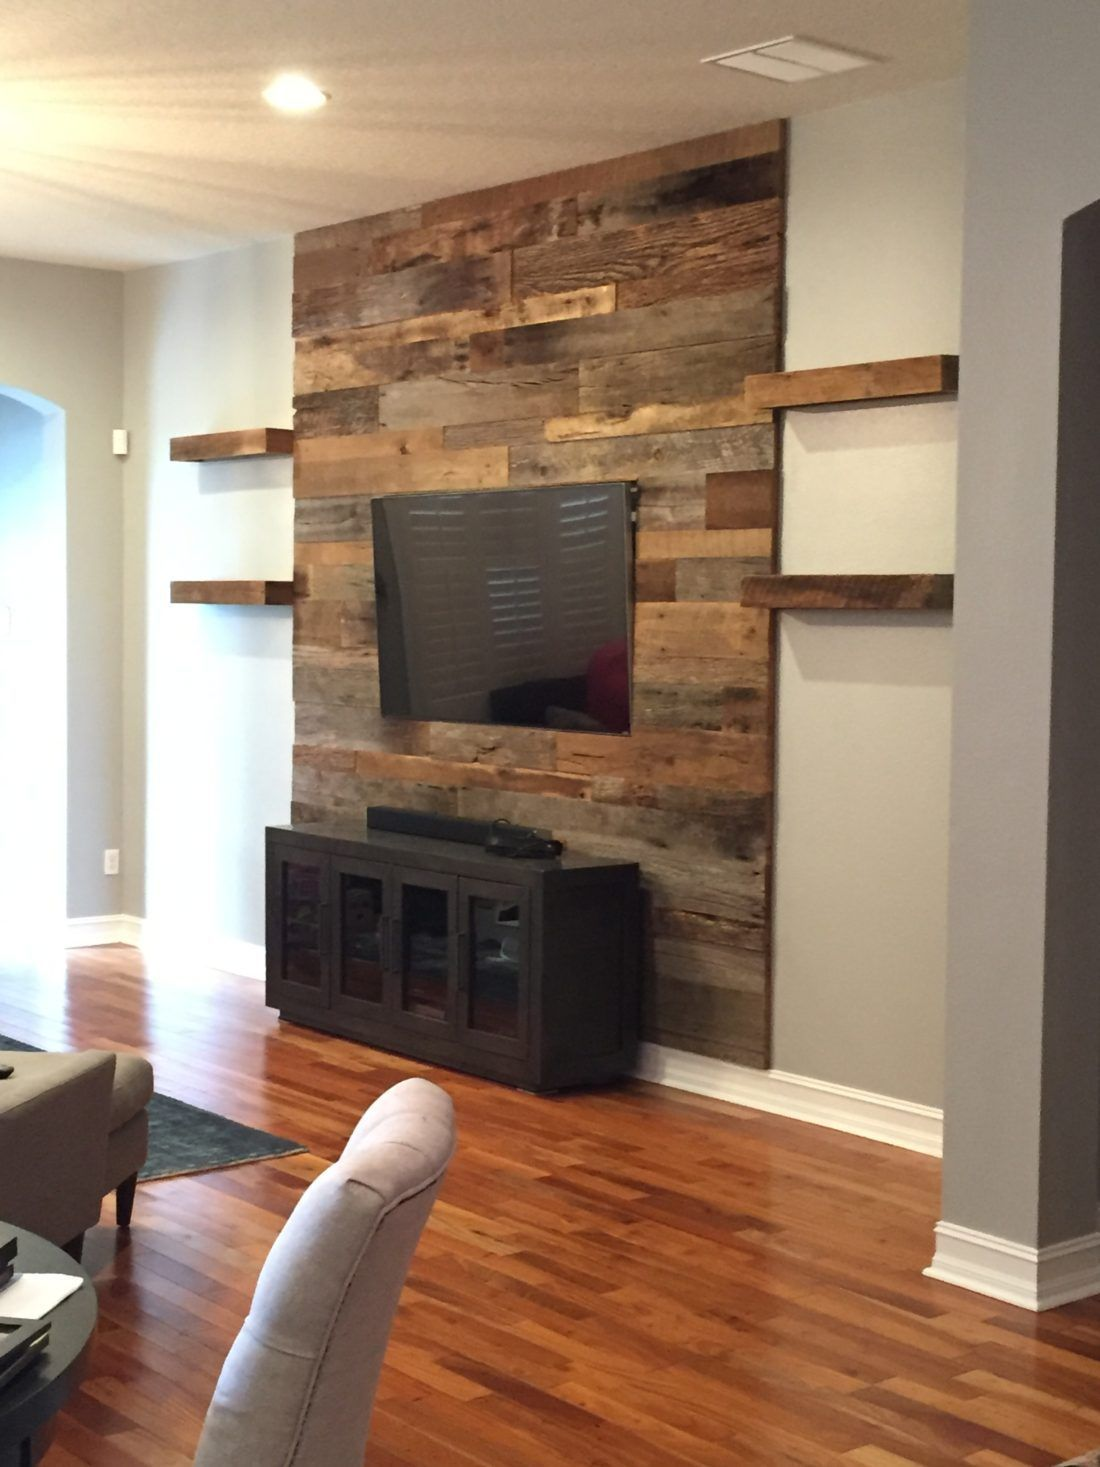 Best wood accent wall ideas to make any spaces warmth